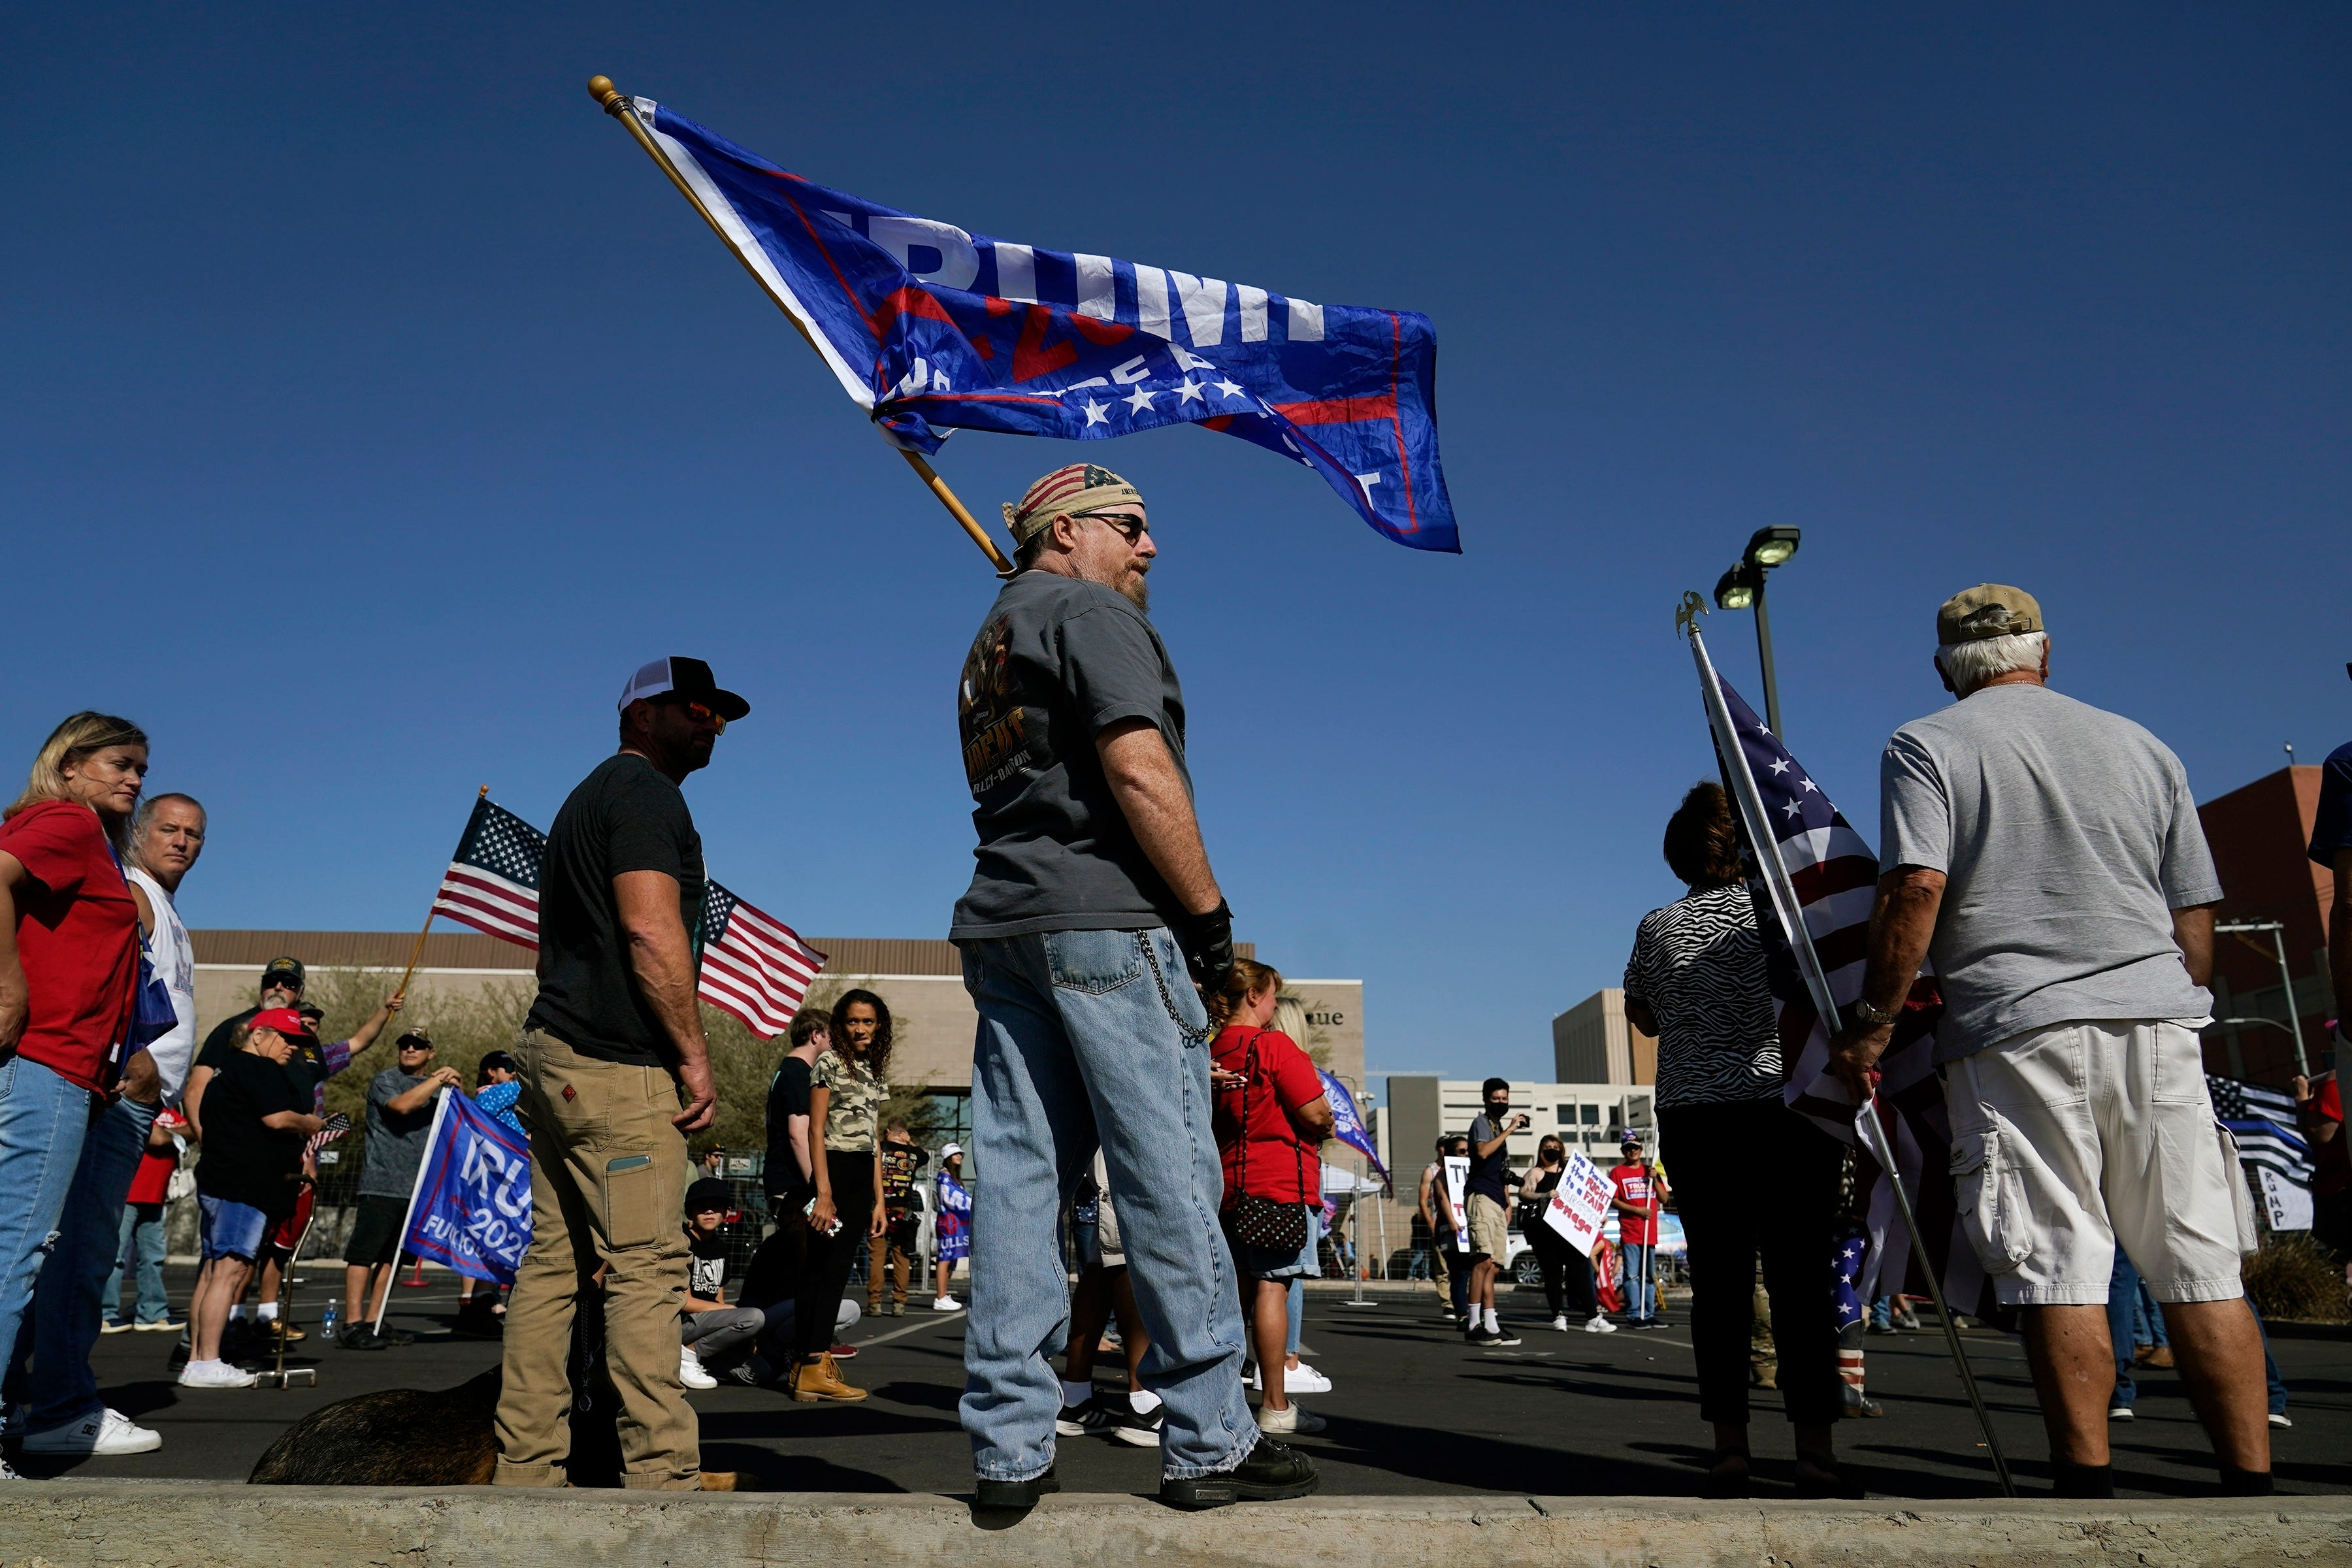 A man holding a Trump flag rallies outside the Maricopa County Recorder's Office in Phoenix.